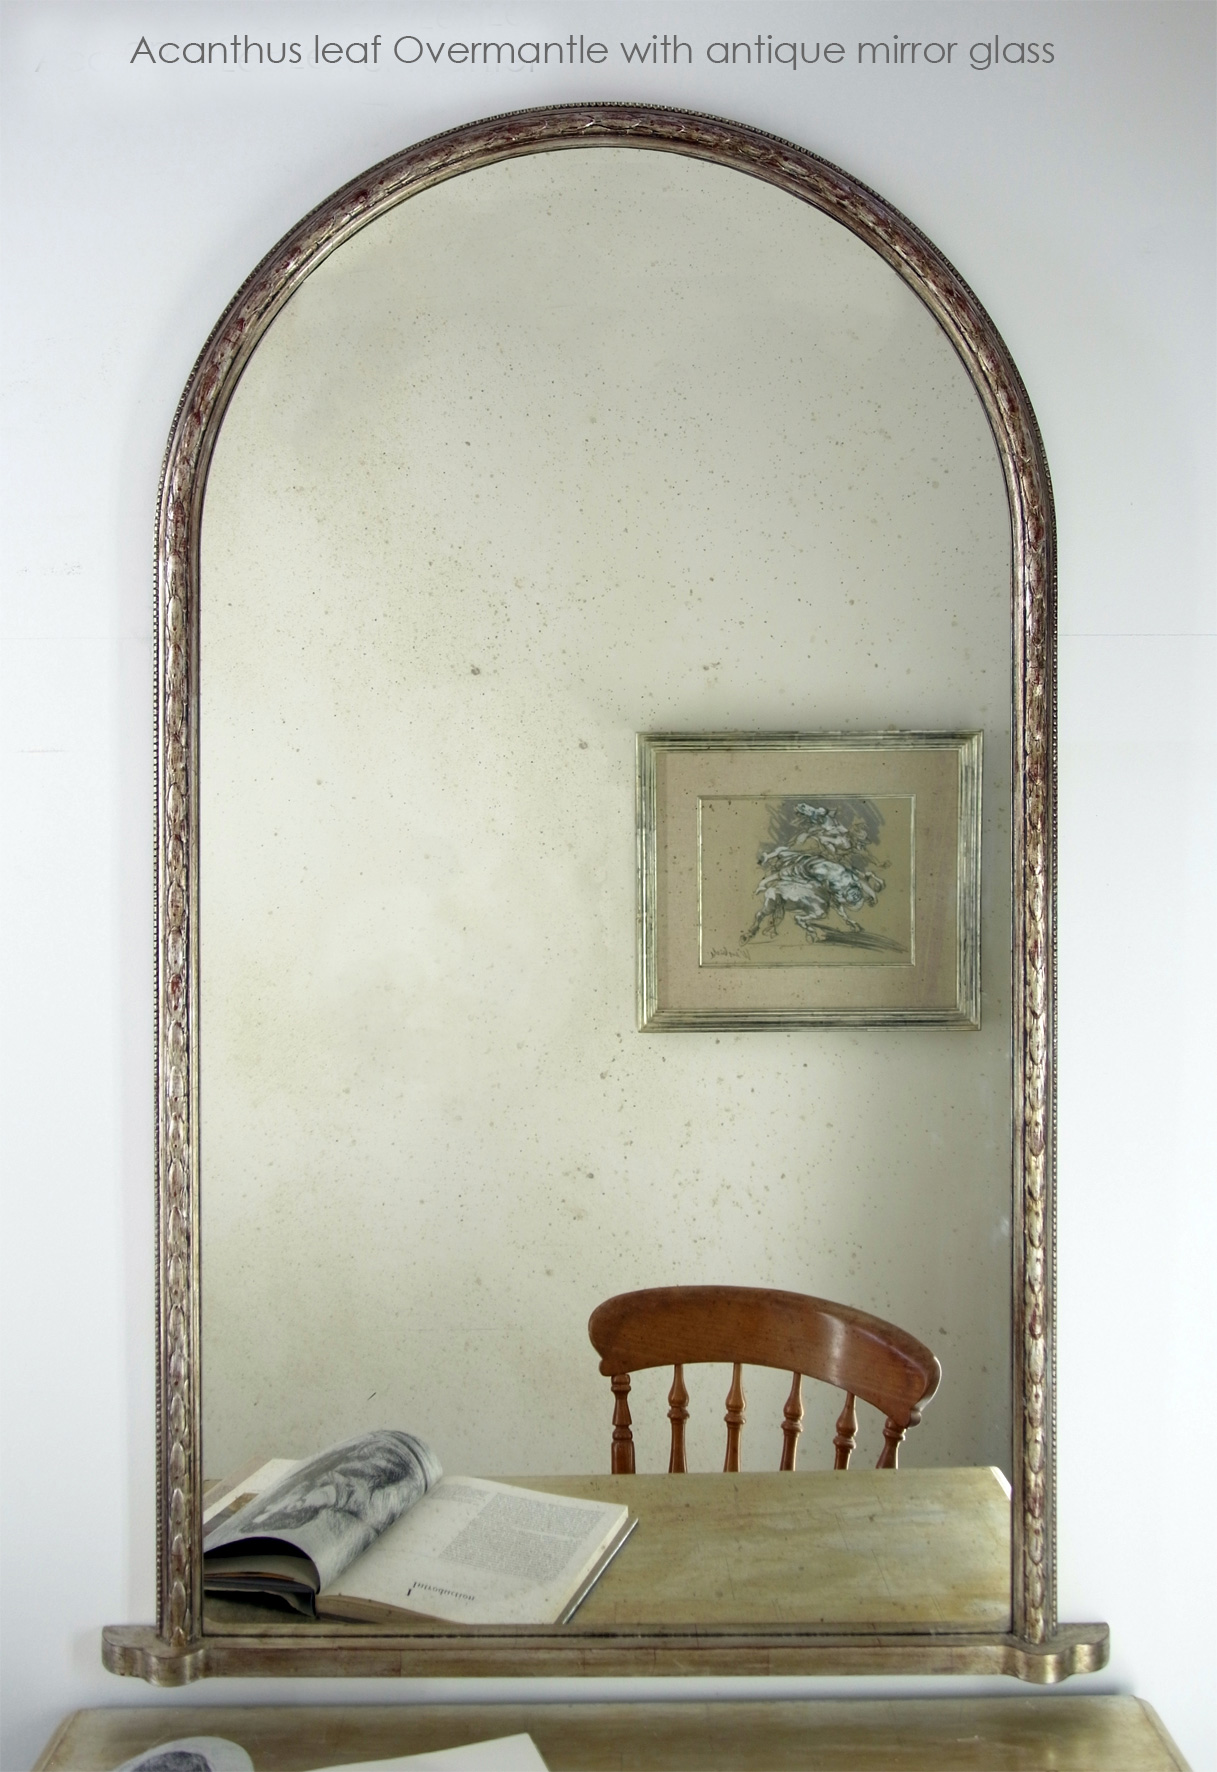 Patrick Acanthus-overmantle with antique mirror glass